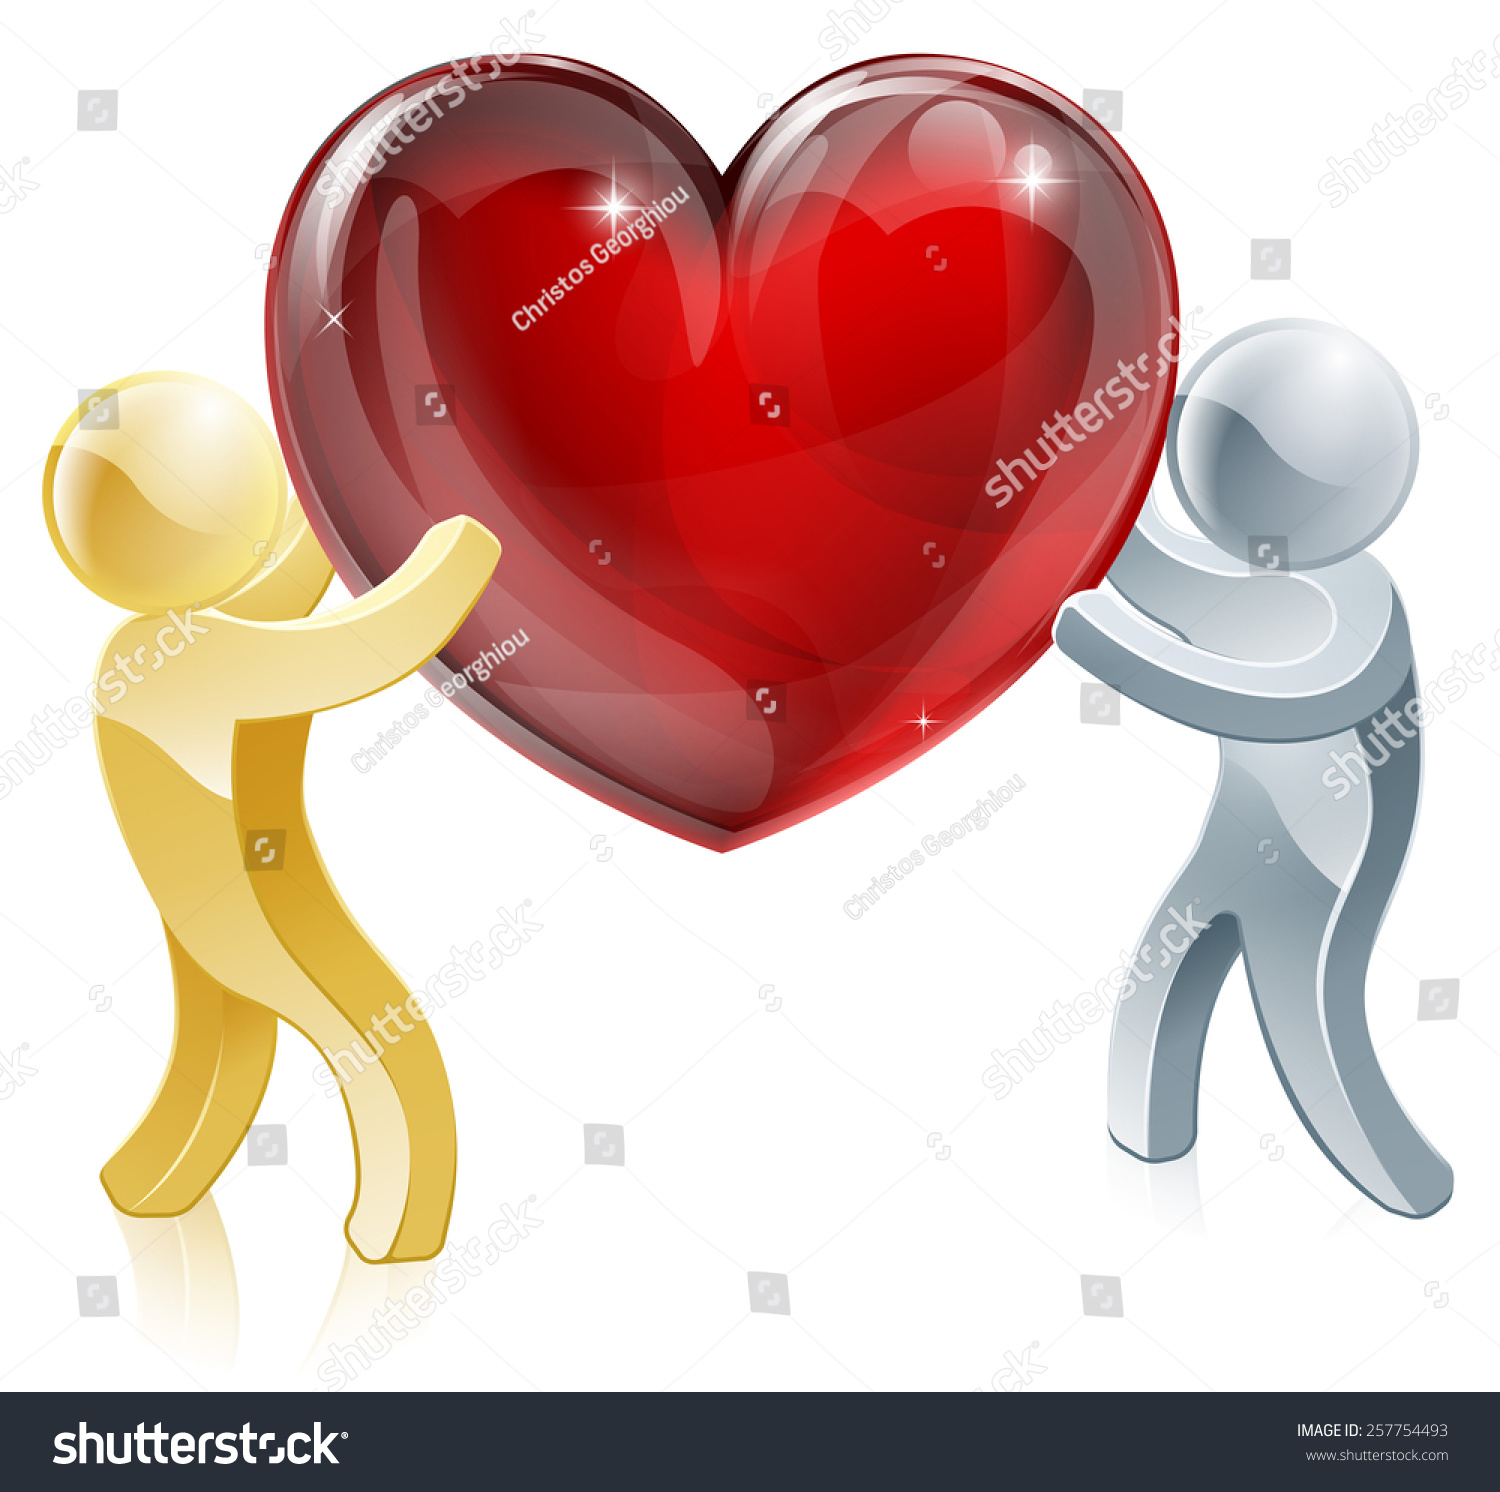 Holding heart love symbol illustration two stock illustration holding heart love symbol illustration of two people mascots holding a big heart biocorpaavc